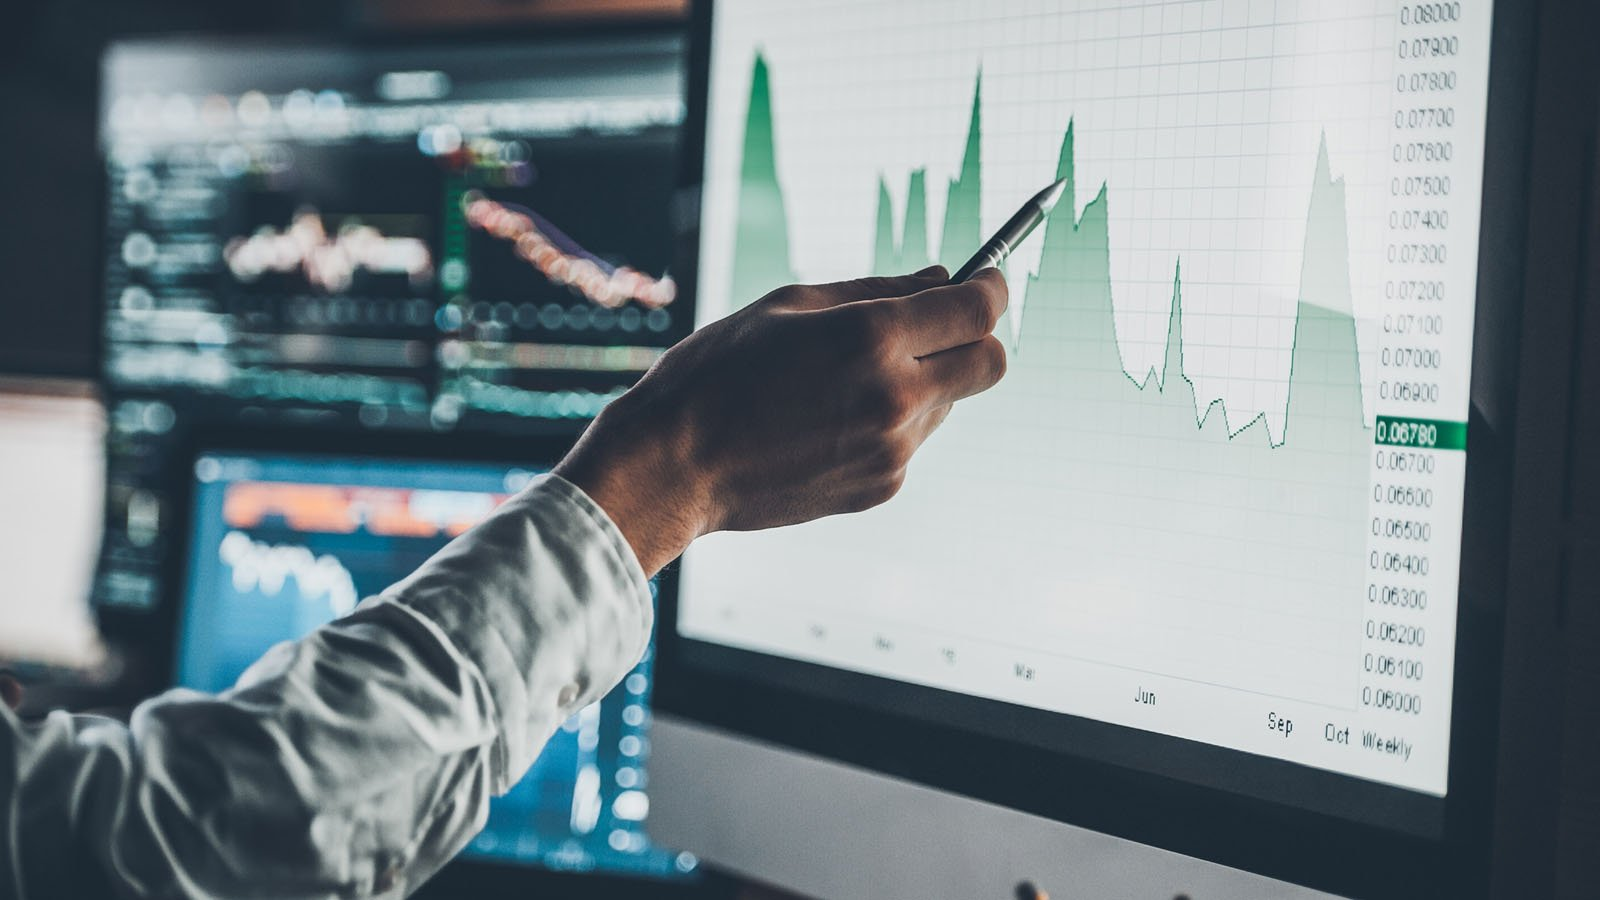 Access here alternative investment news about 7 Great Buy-and-hold Growth Stocks For 2020 And Beyond | Investorplace